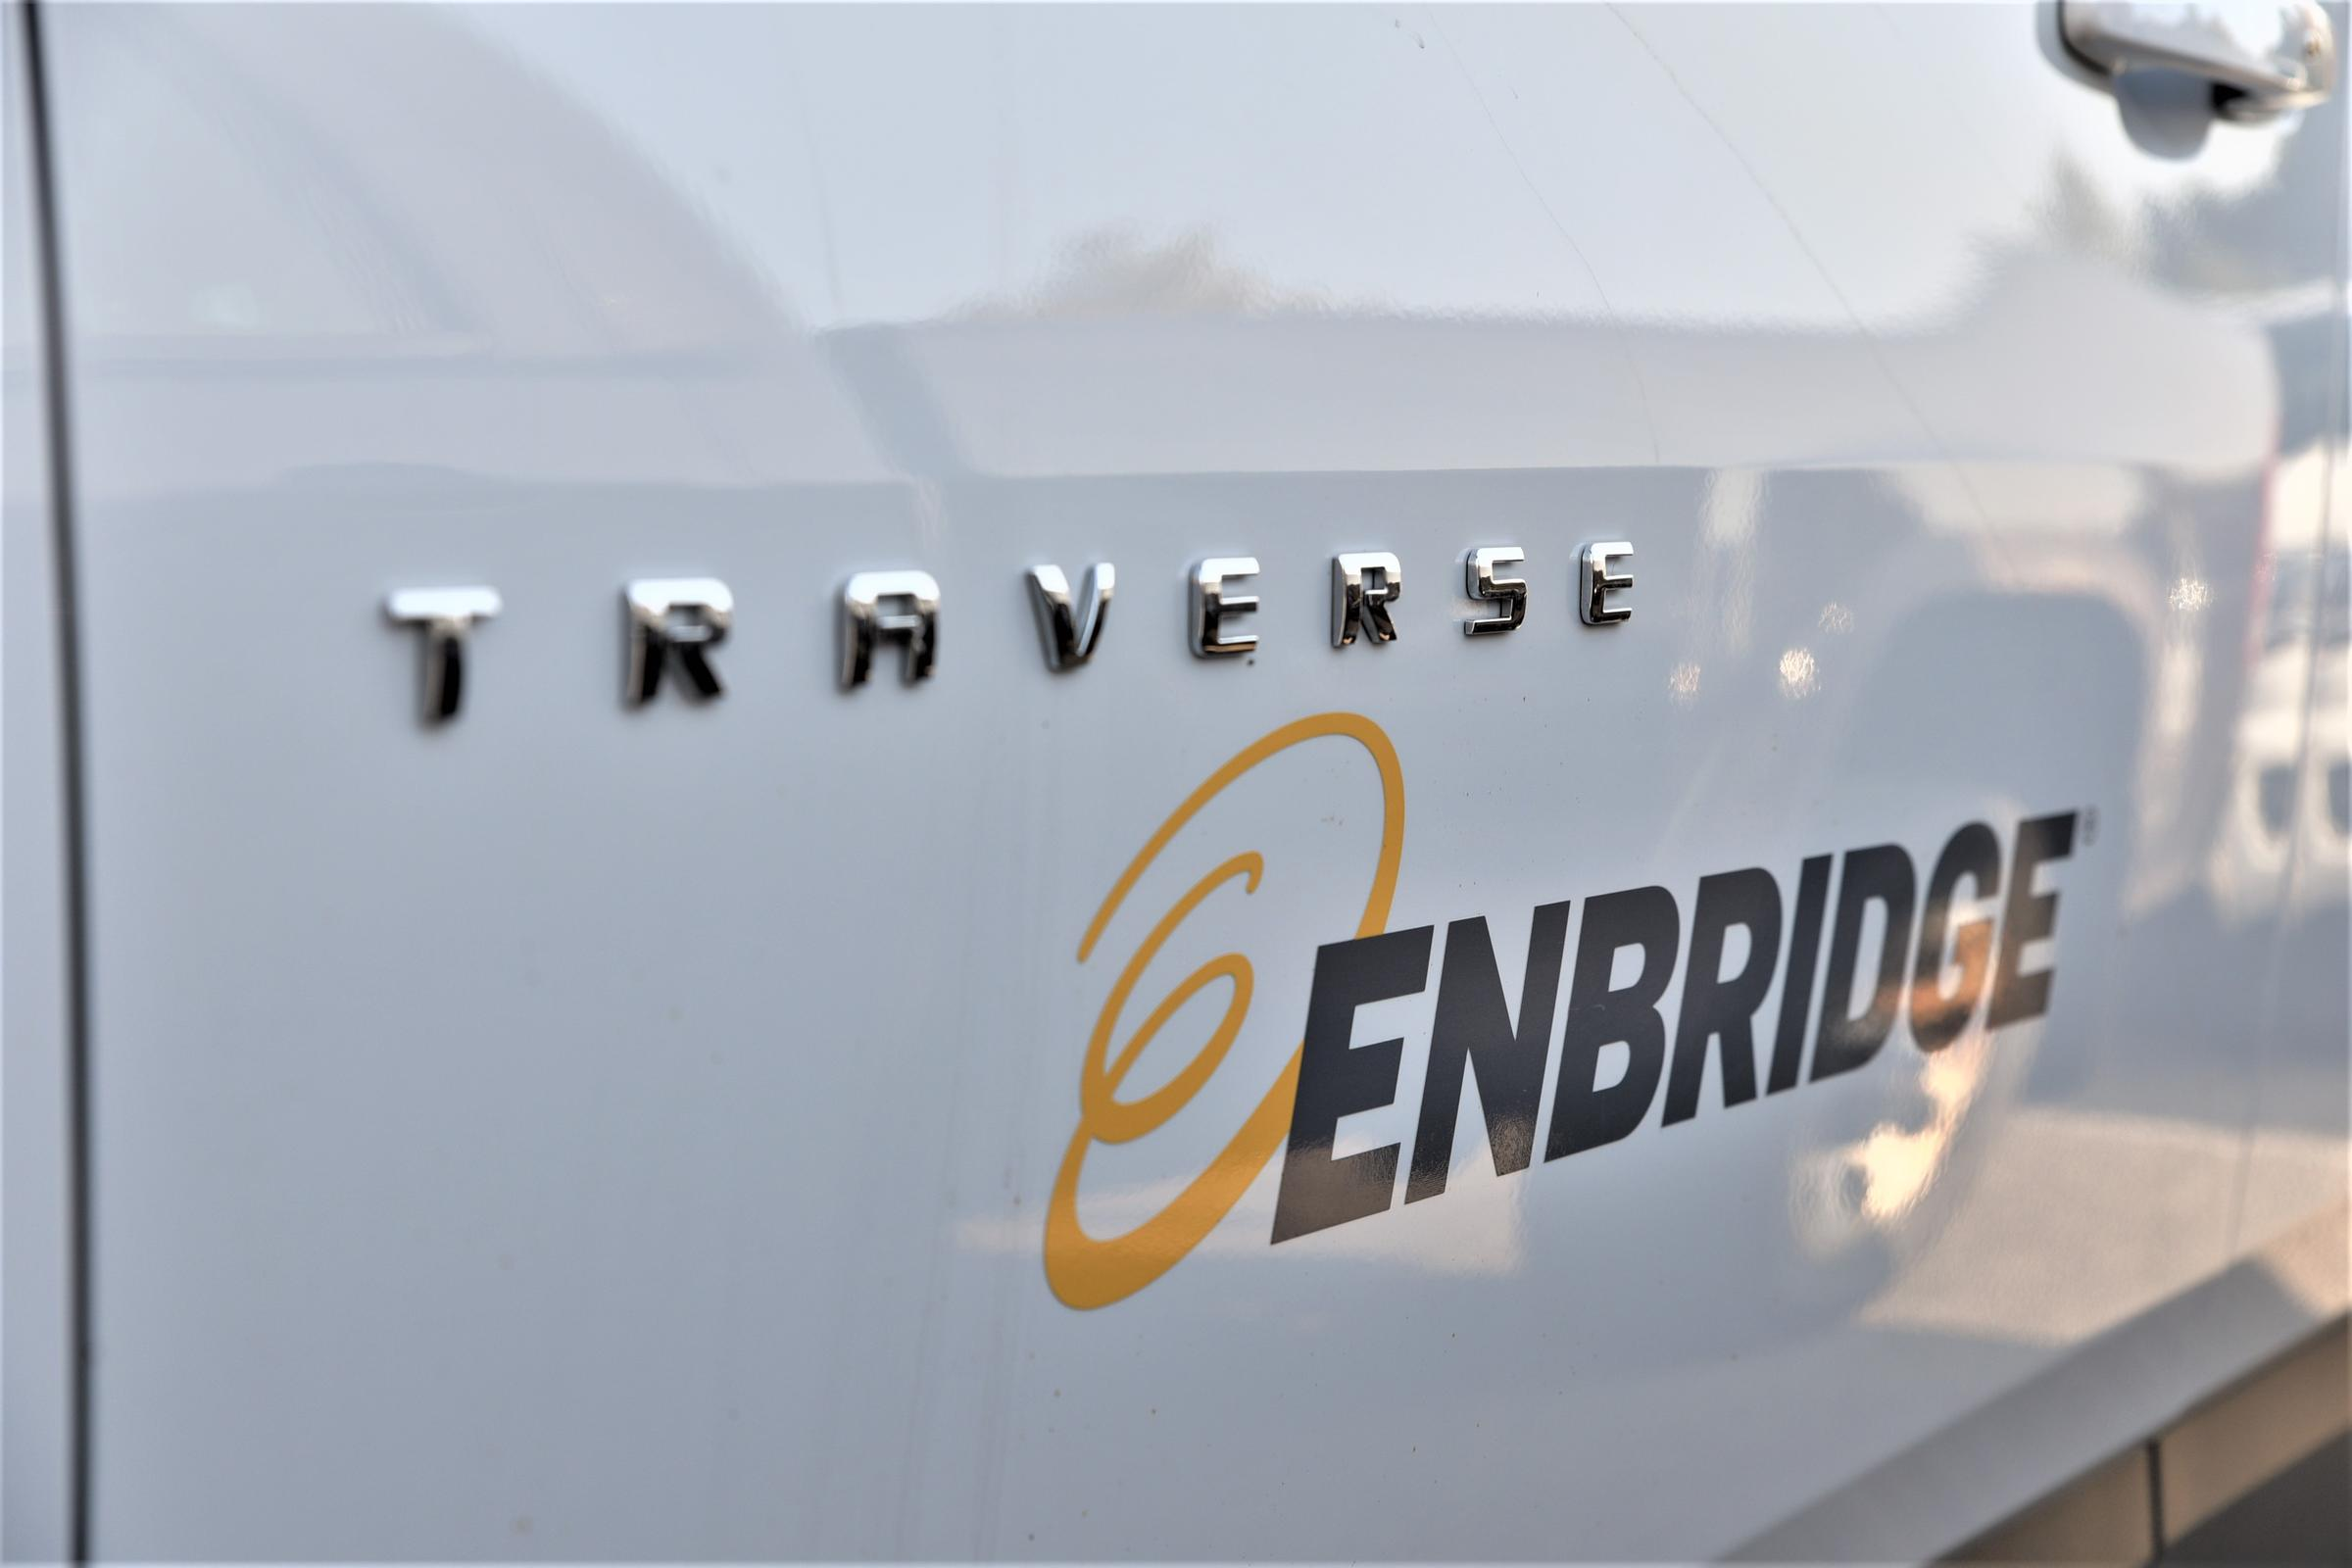 Can Enbridge (ENB.TO) Stock Surge New Heights?